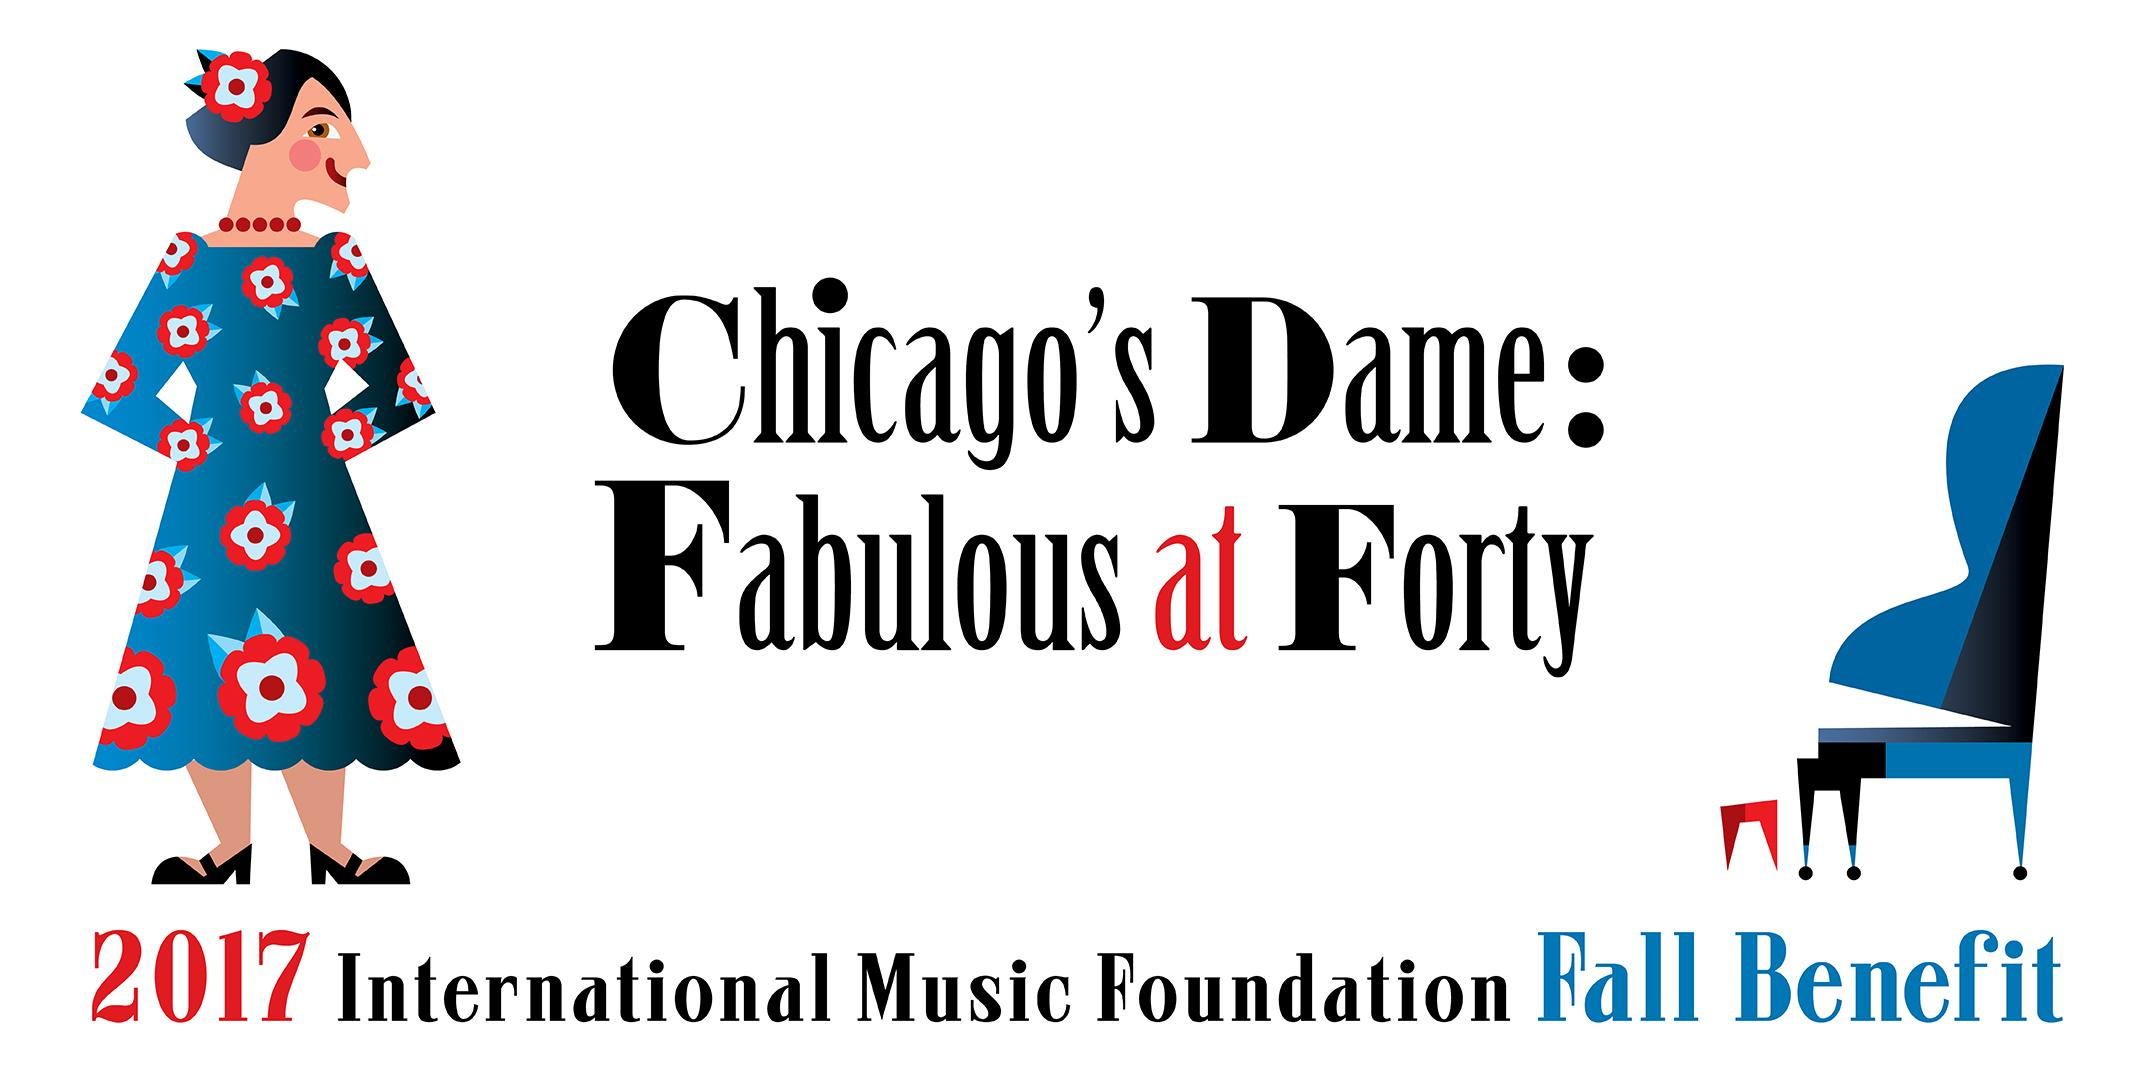 Chicagos dame fabulous at forty tickets tue nov 14 2017 at 530 event details solutioingenieria Image collections